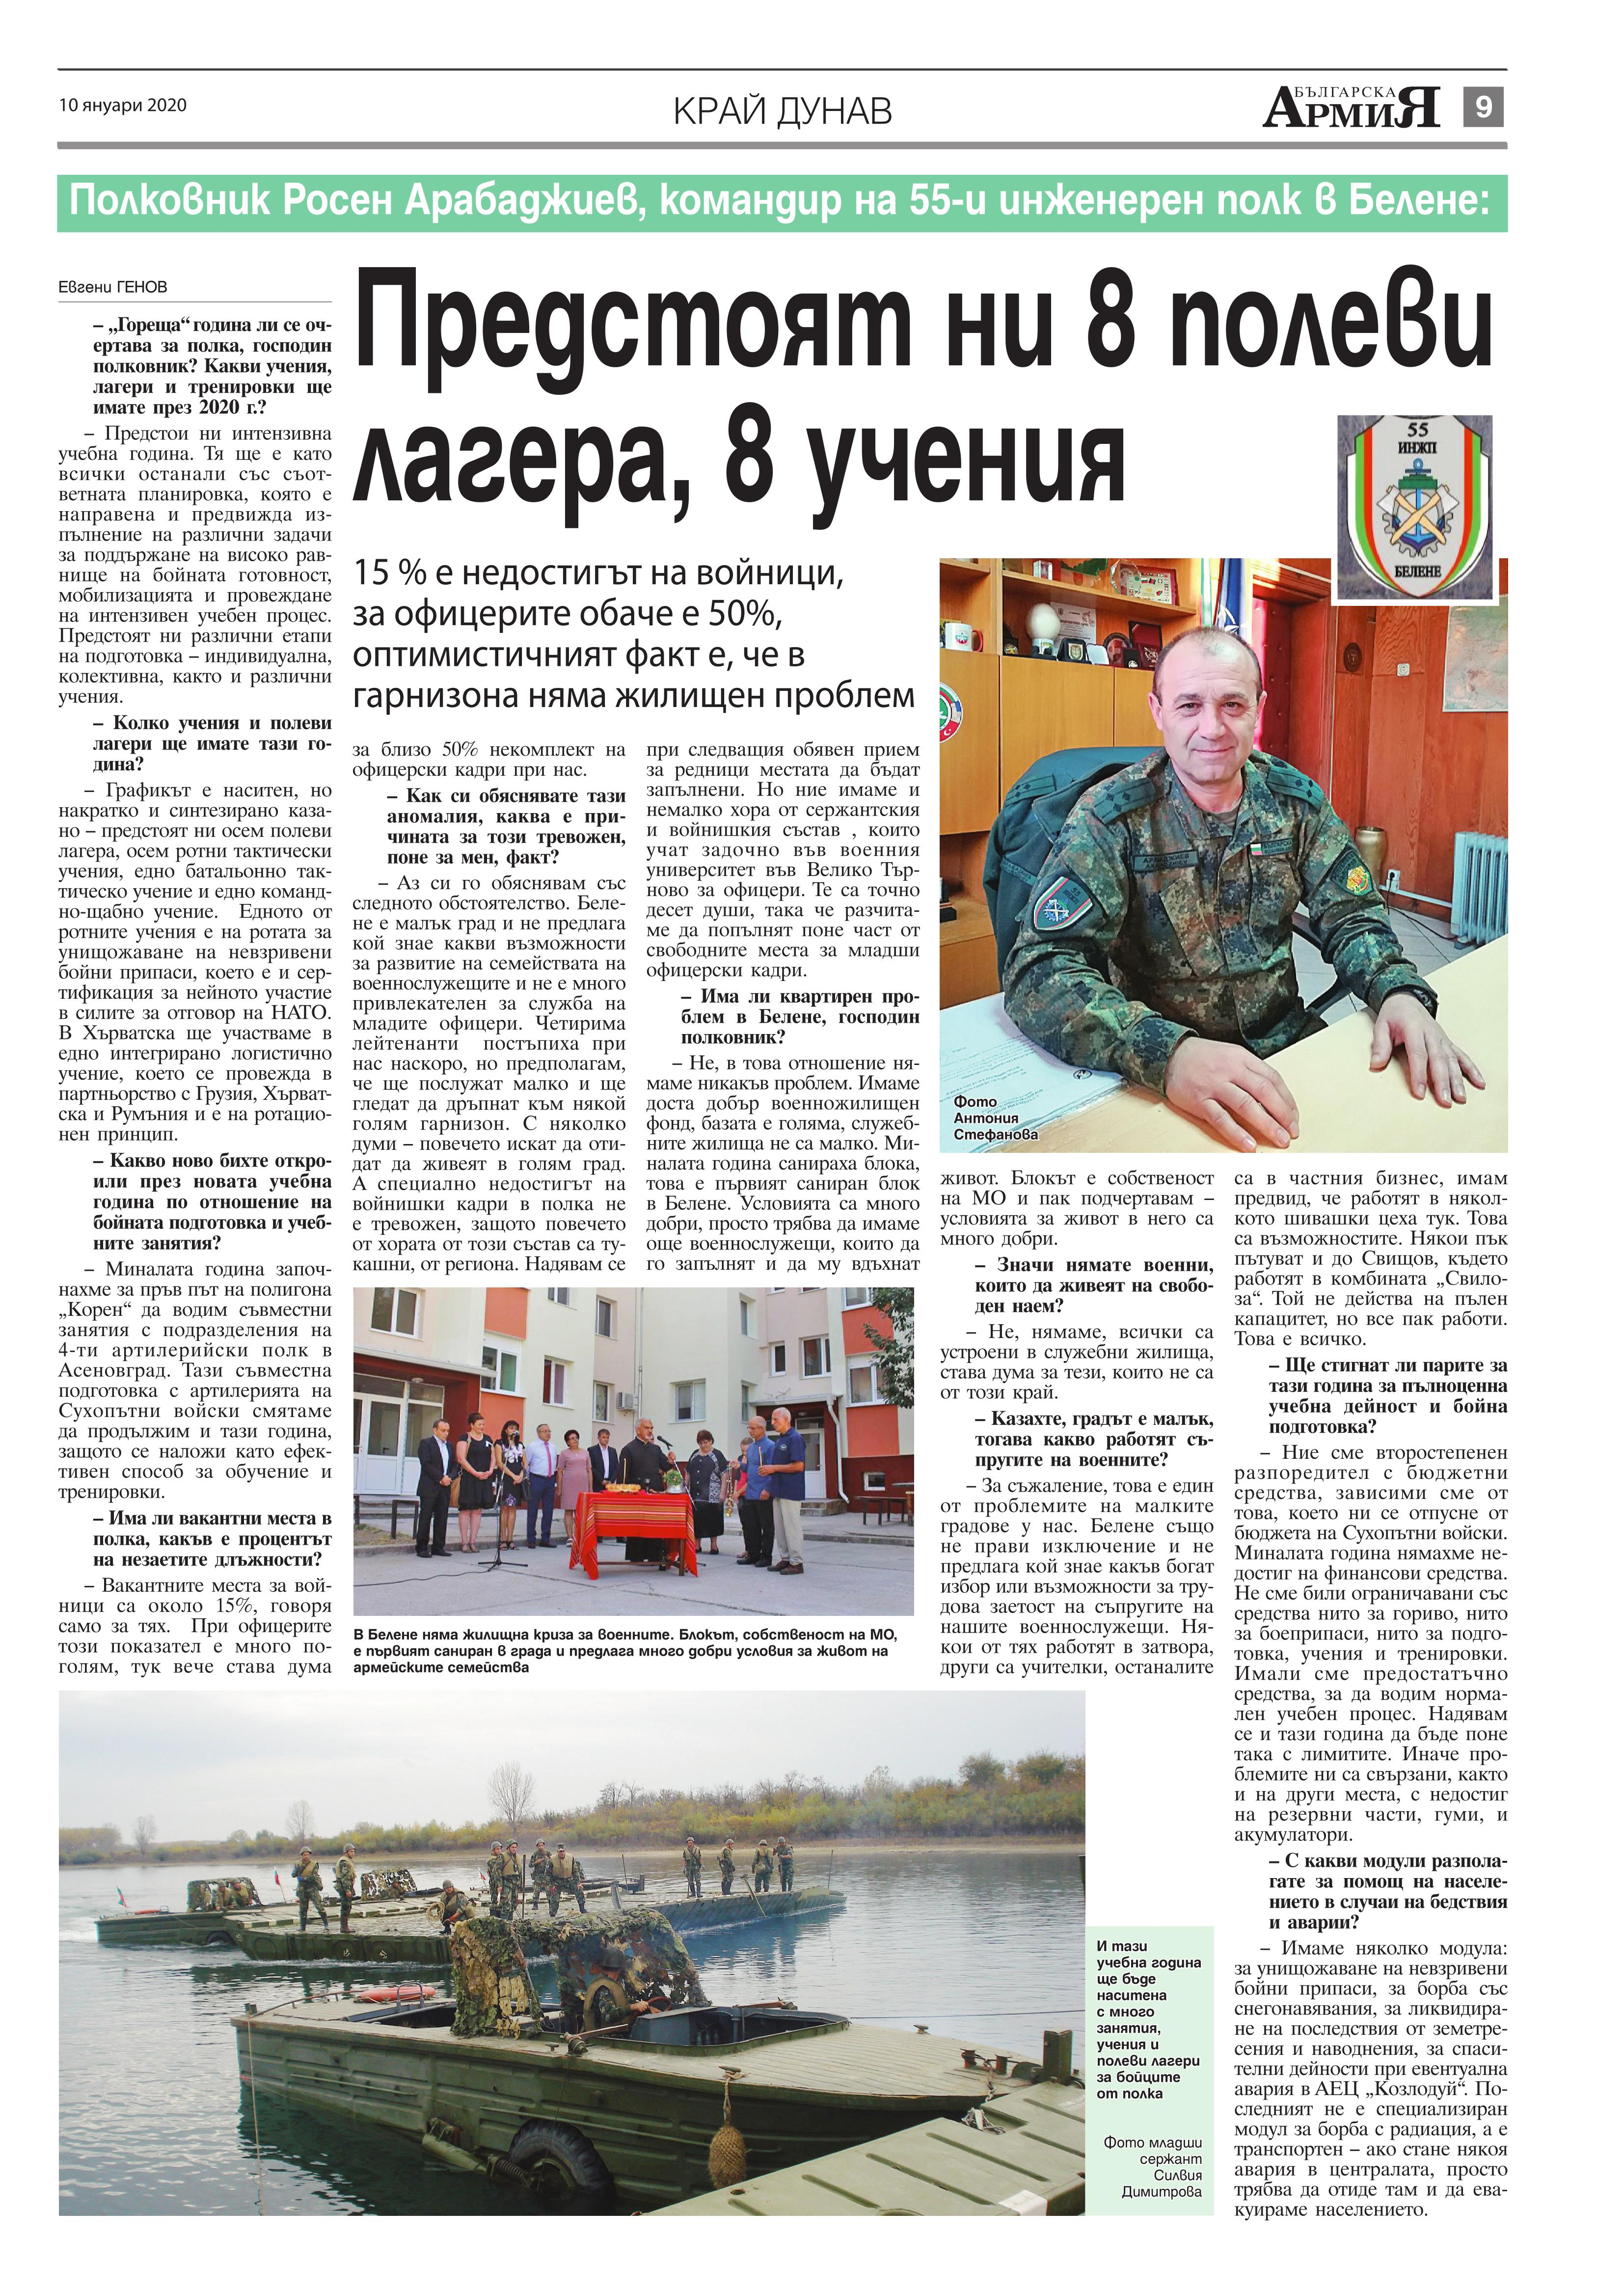 https://armymedia.bg/wp-content/uploads/2015/06/09.page1_-120.jpg